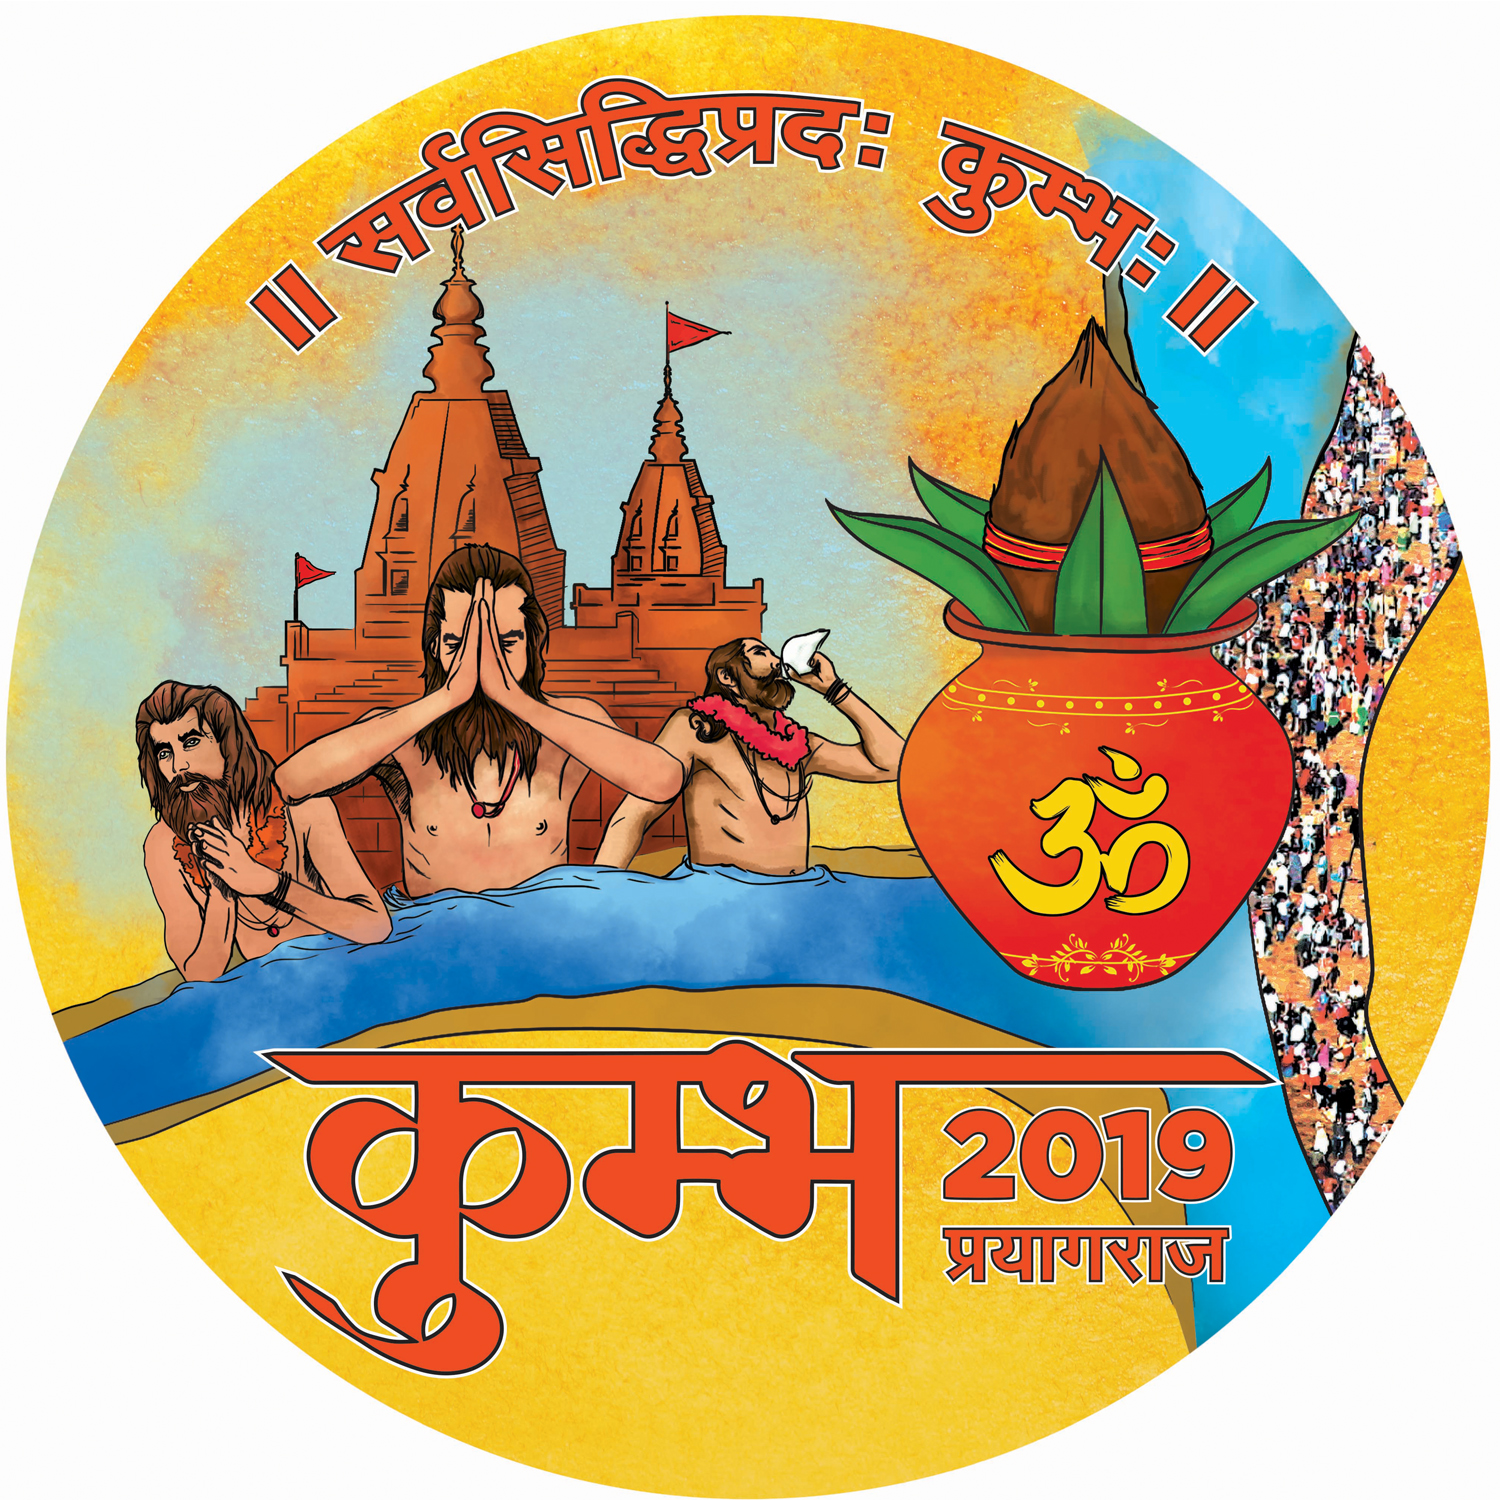 Prayagraj Kumbh 2019 Photo Contest